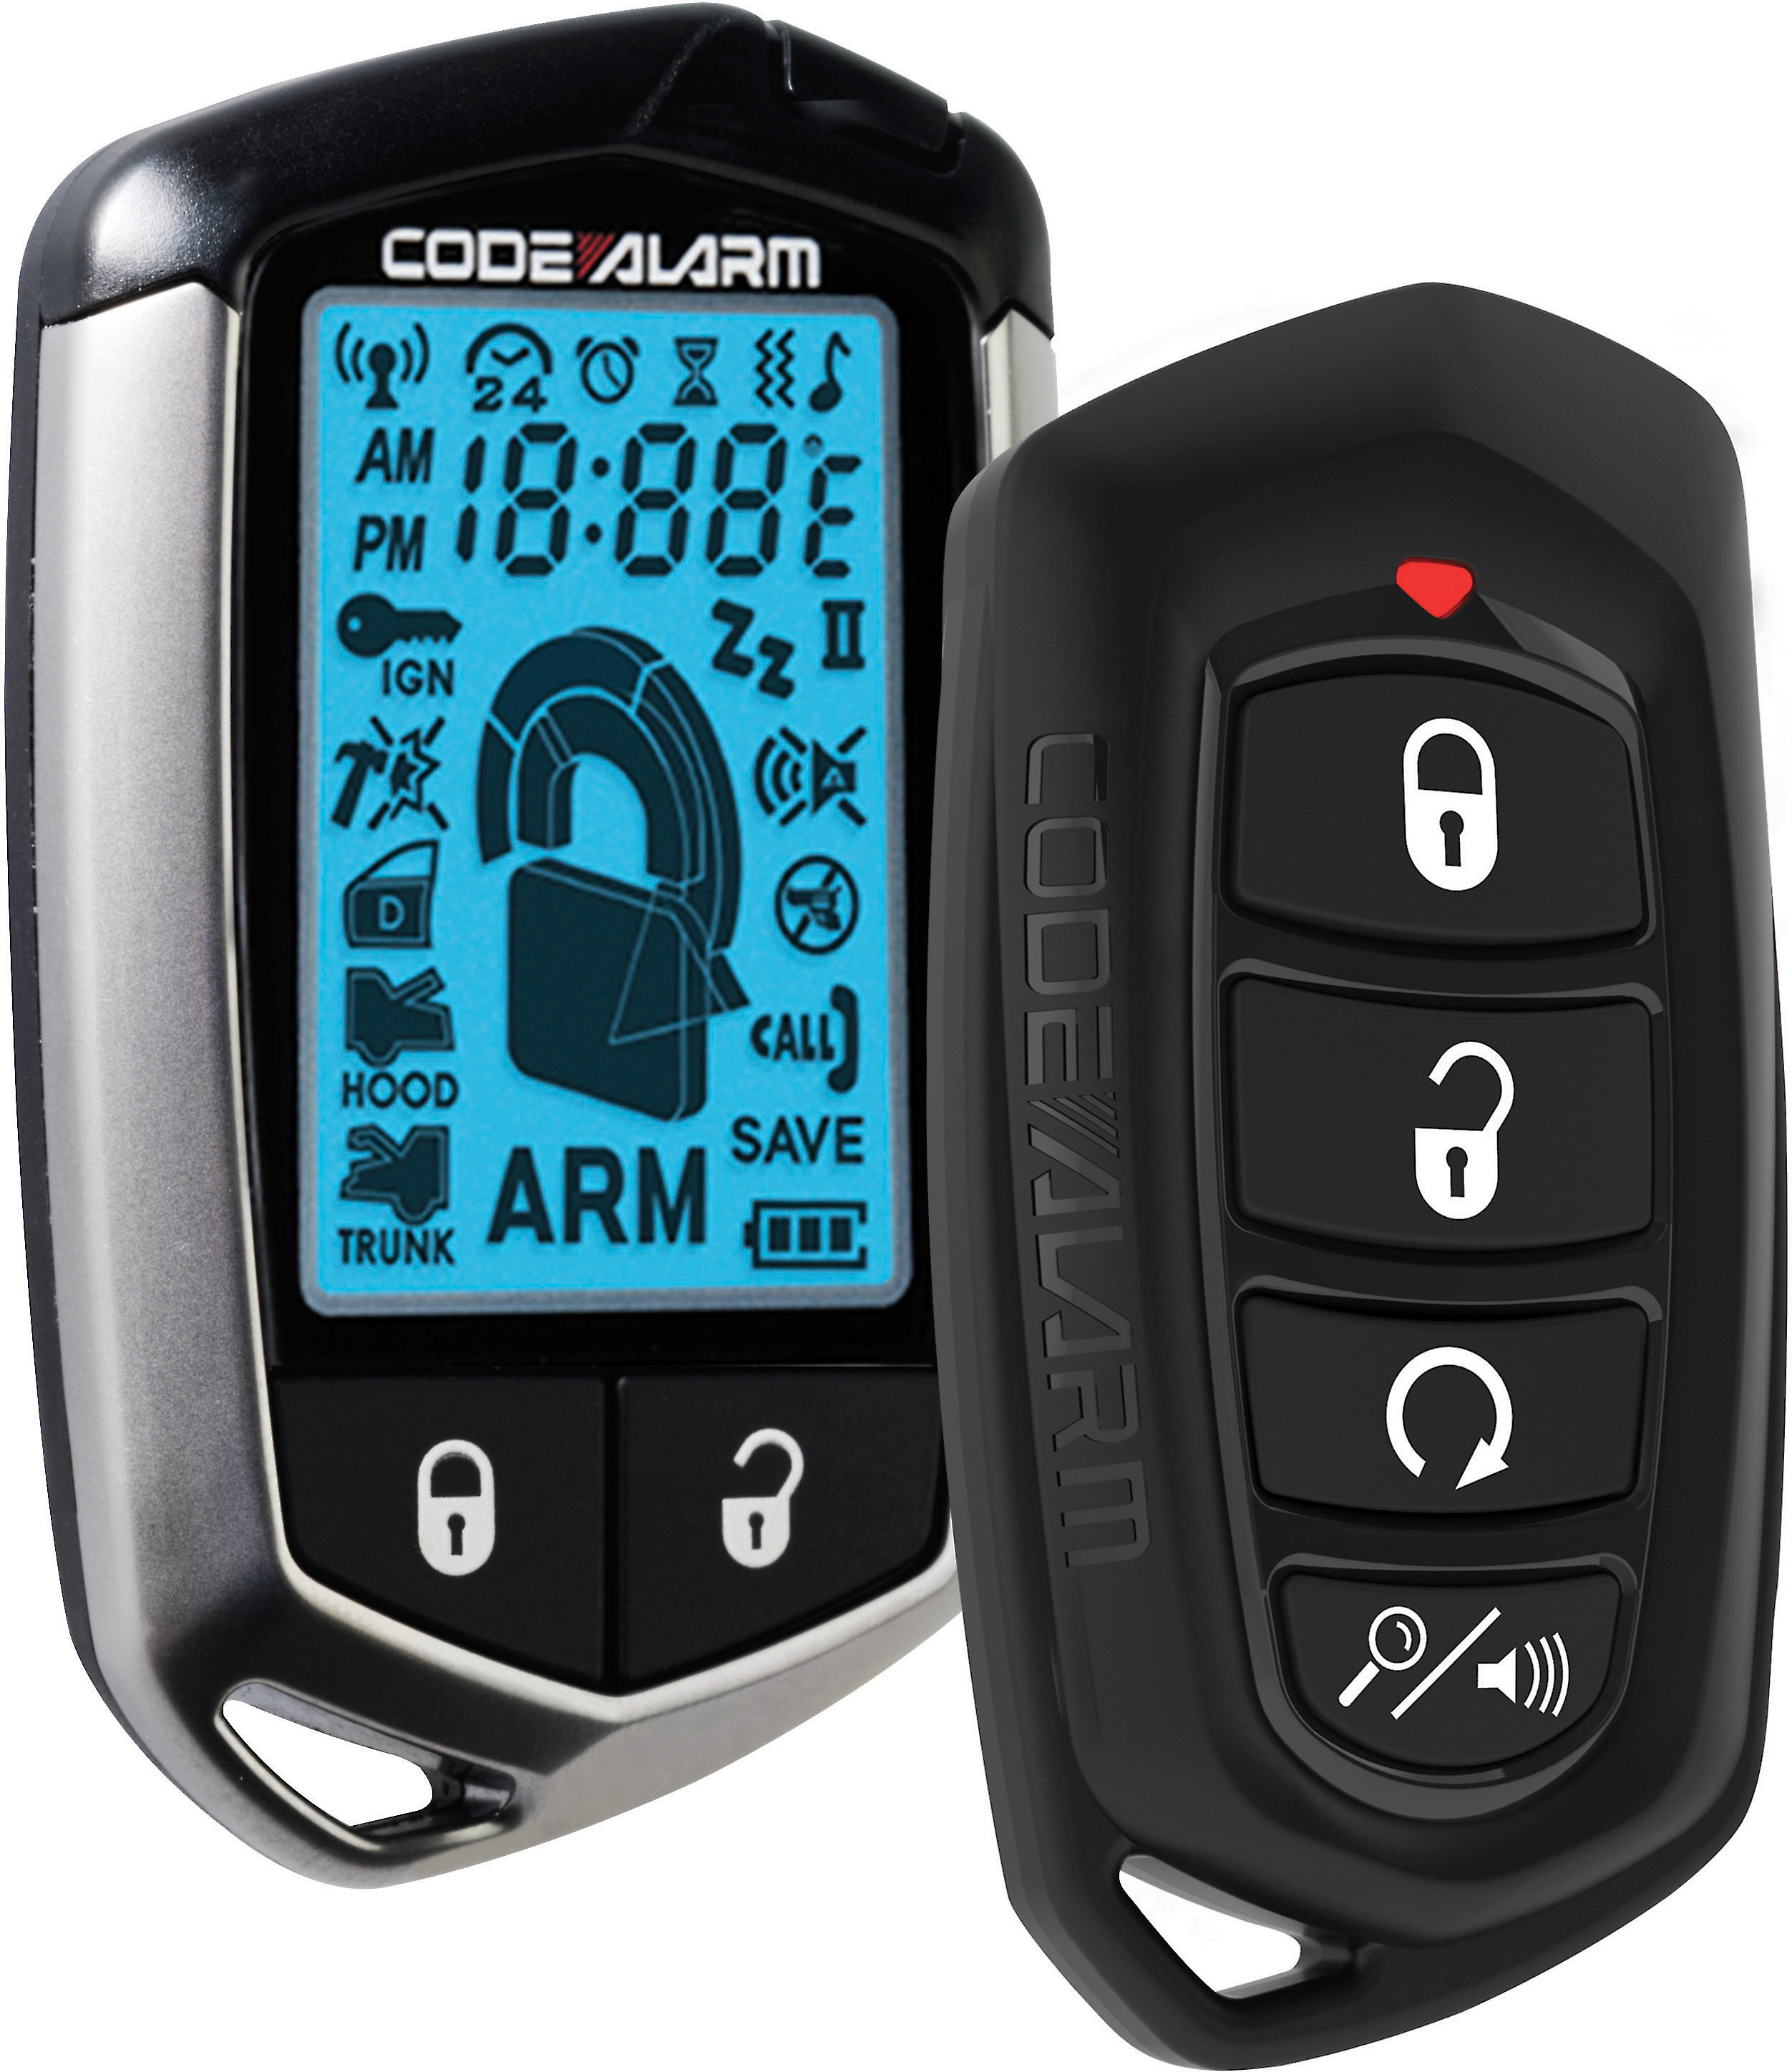 Burglar Alarm Alarm Systems & Security Smart Universal Two Way Motorcycle Alarm Kit With 2 Lcd Transmitters Remote Engine Start Panic Mode And Shocking Alarm